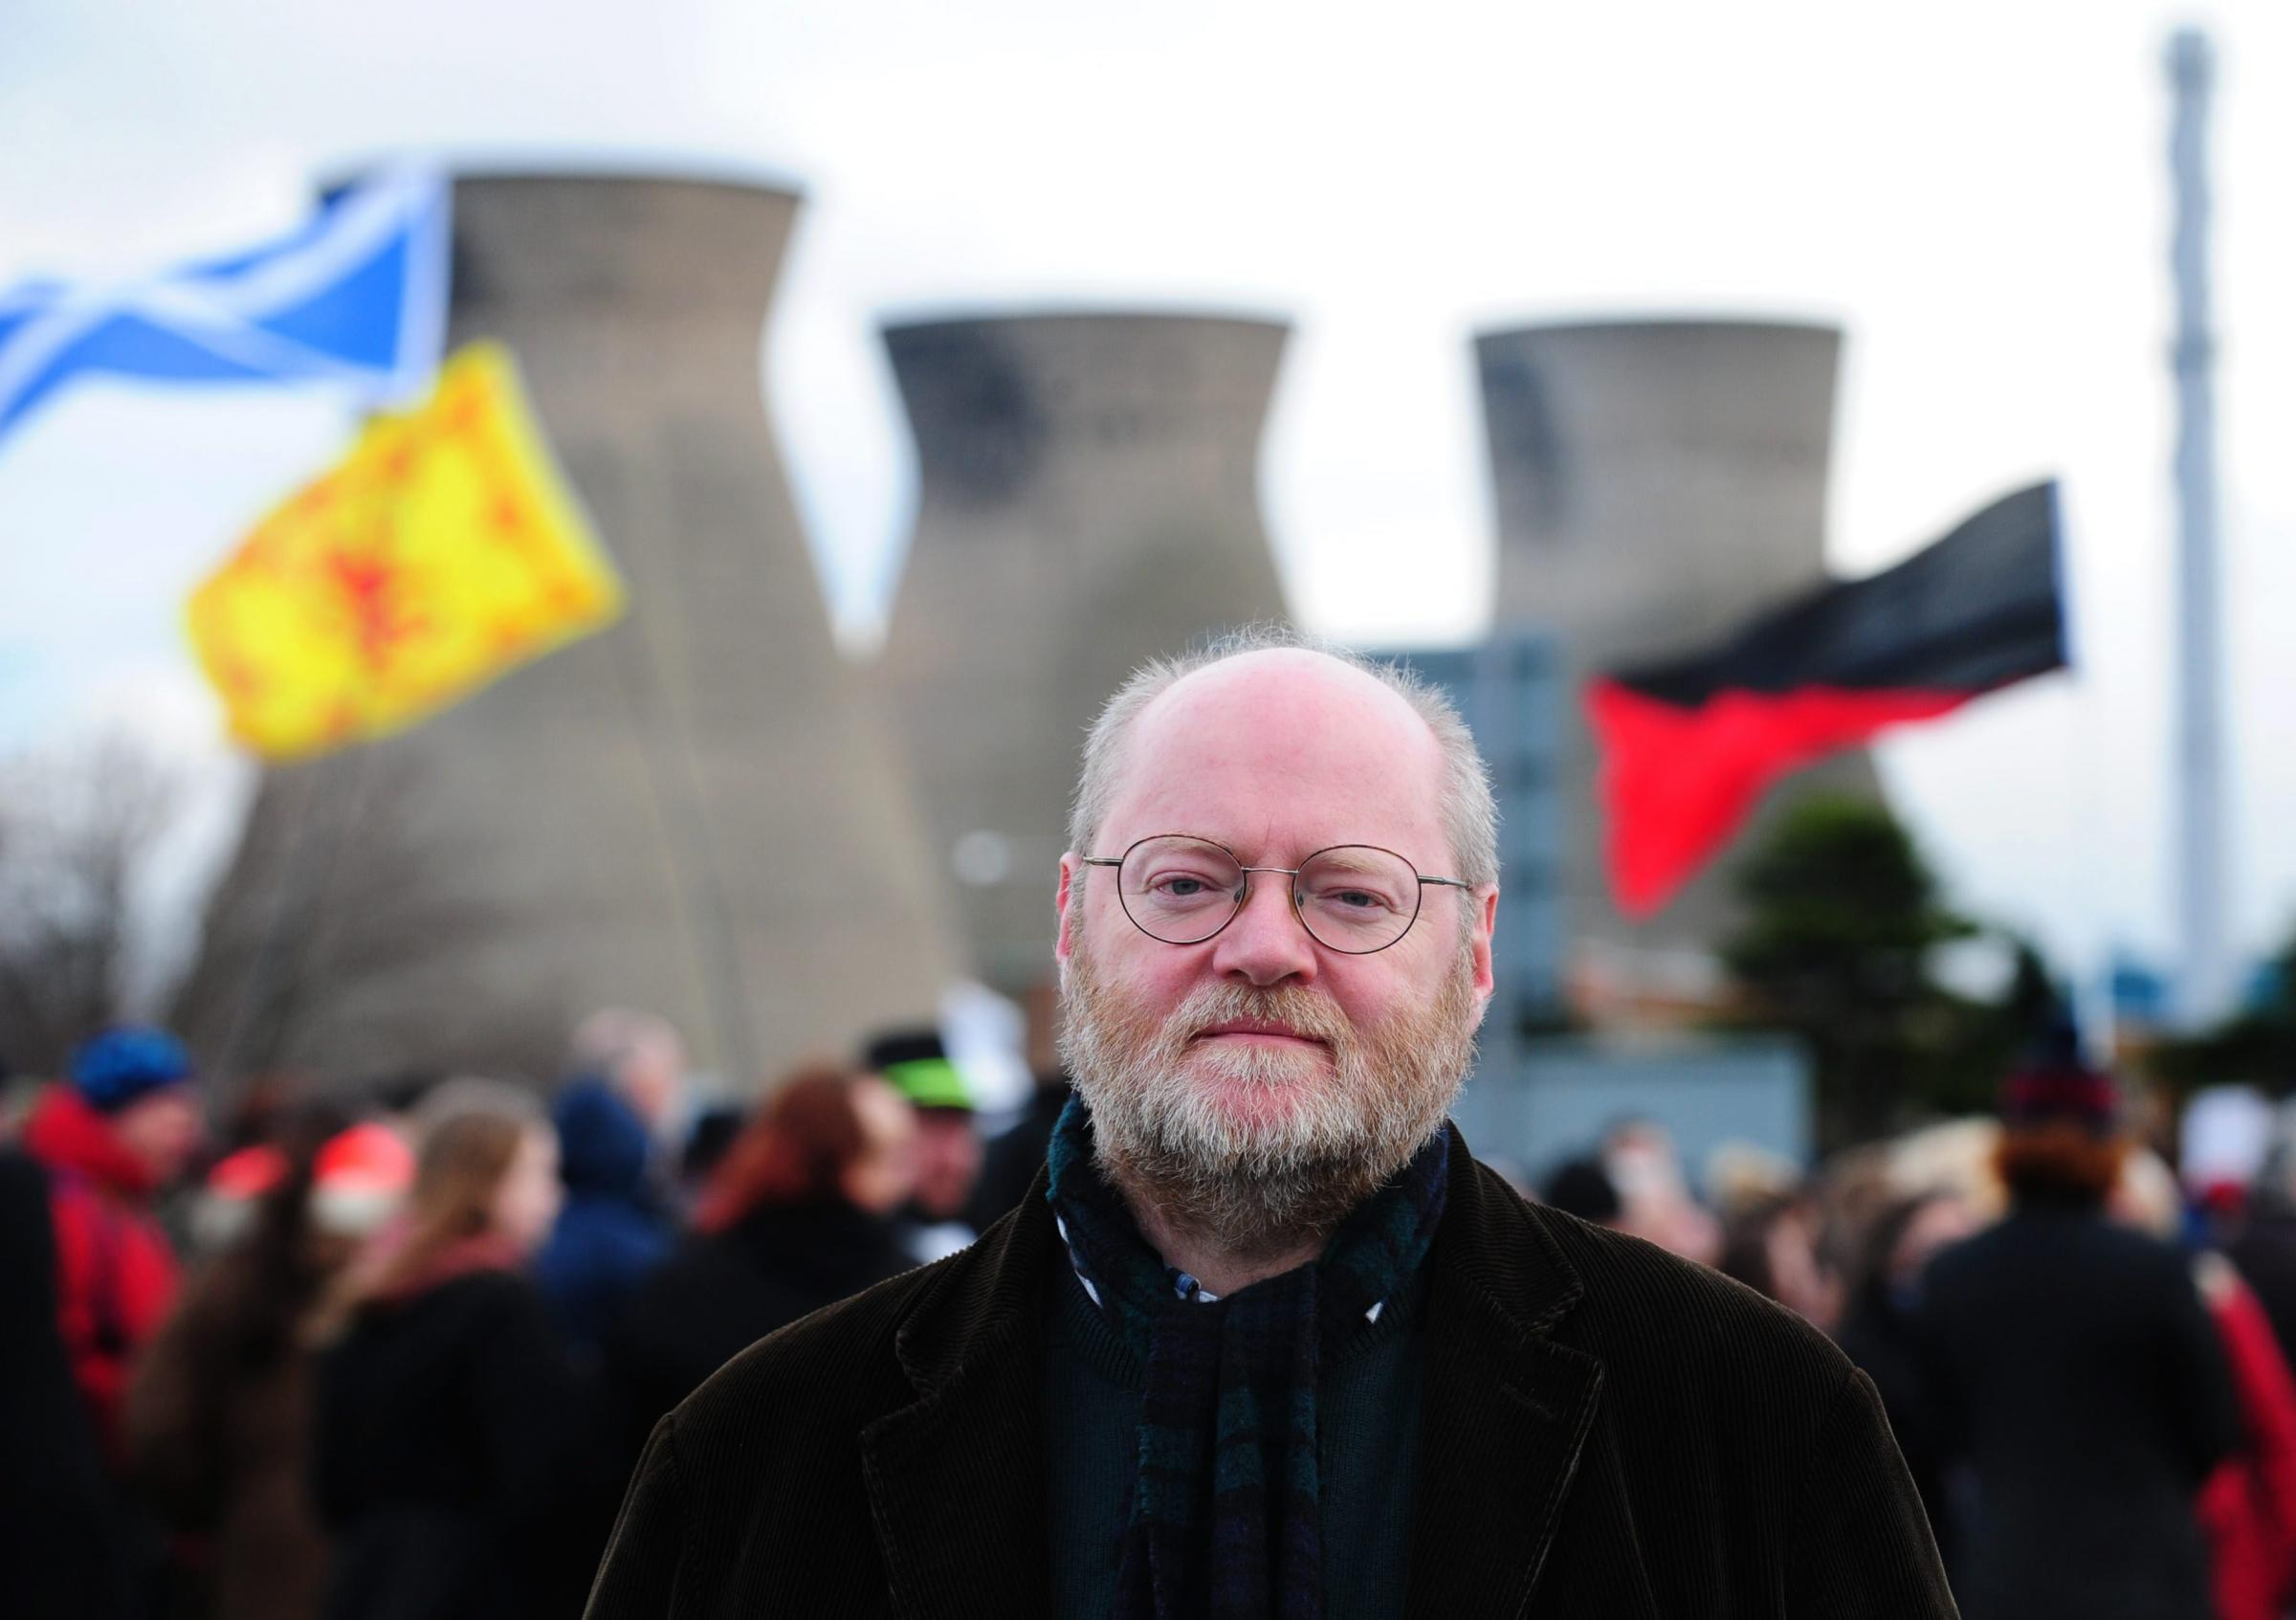 Dr Richard Dixon, director of Friends of the Earth Scotland, supports the plan